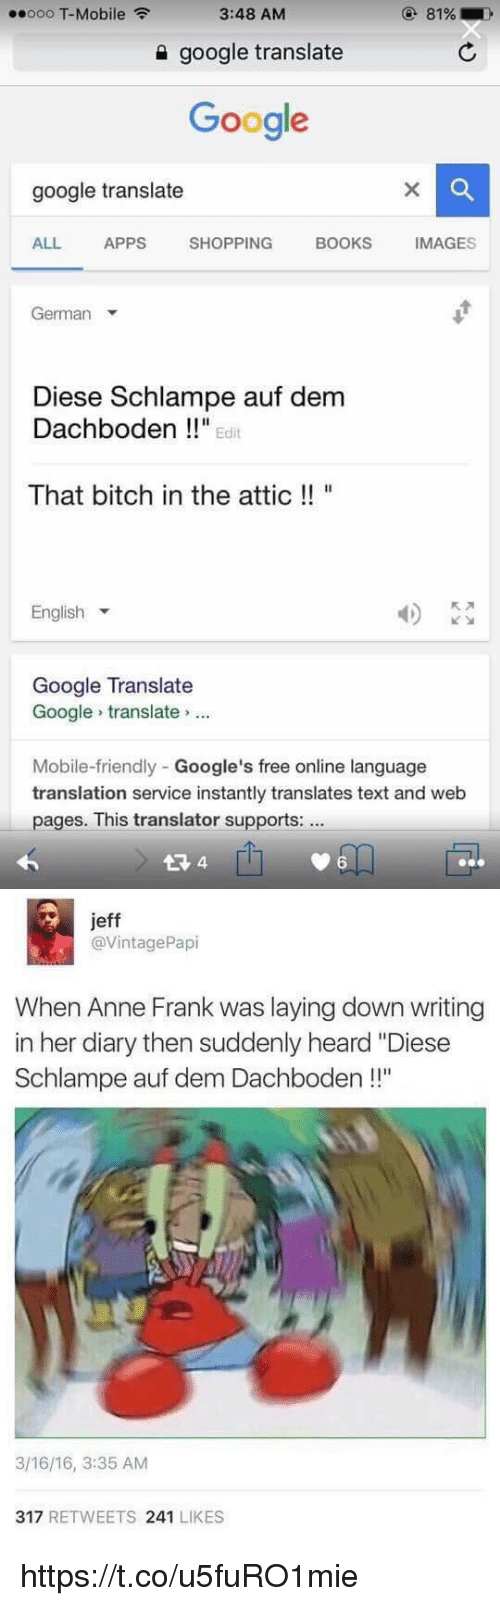 """Bitch, Books, and Friends: ooo T-Mobile  3:48 AM  google translate  Google  google translate  BOOKS  MAGES  ALL  APPS  SHOPPING  German  Diese Schlampe auf dem  Dachboden Edit  That bitch in the attic  English  Google Translate  Google translate  Mobile-friendly Google's free online language  translation service instantly translates text and web  pages. This translator supports:  6   jeff  @VintagePapi  When Anne Frank was laying down writing  in her diary then suddenly heard """"Diese  Schlampe auf dem Dachboden  l""""  3/16/16, 3:35 AM  317  RETWEETS  241  LIKES https://t.co/u5fuRO1mie"""